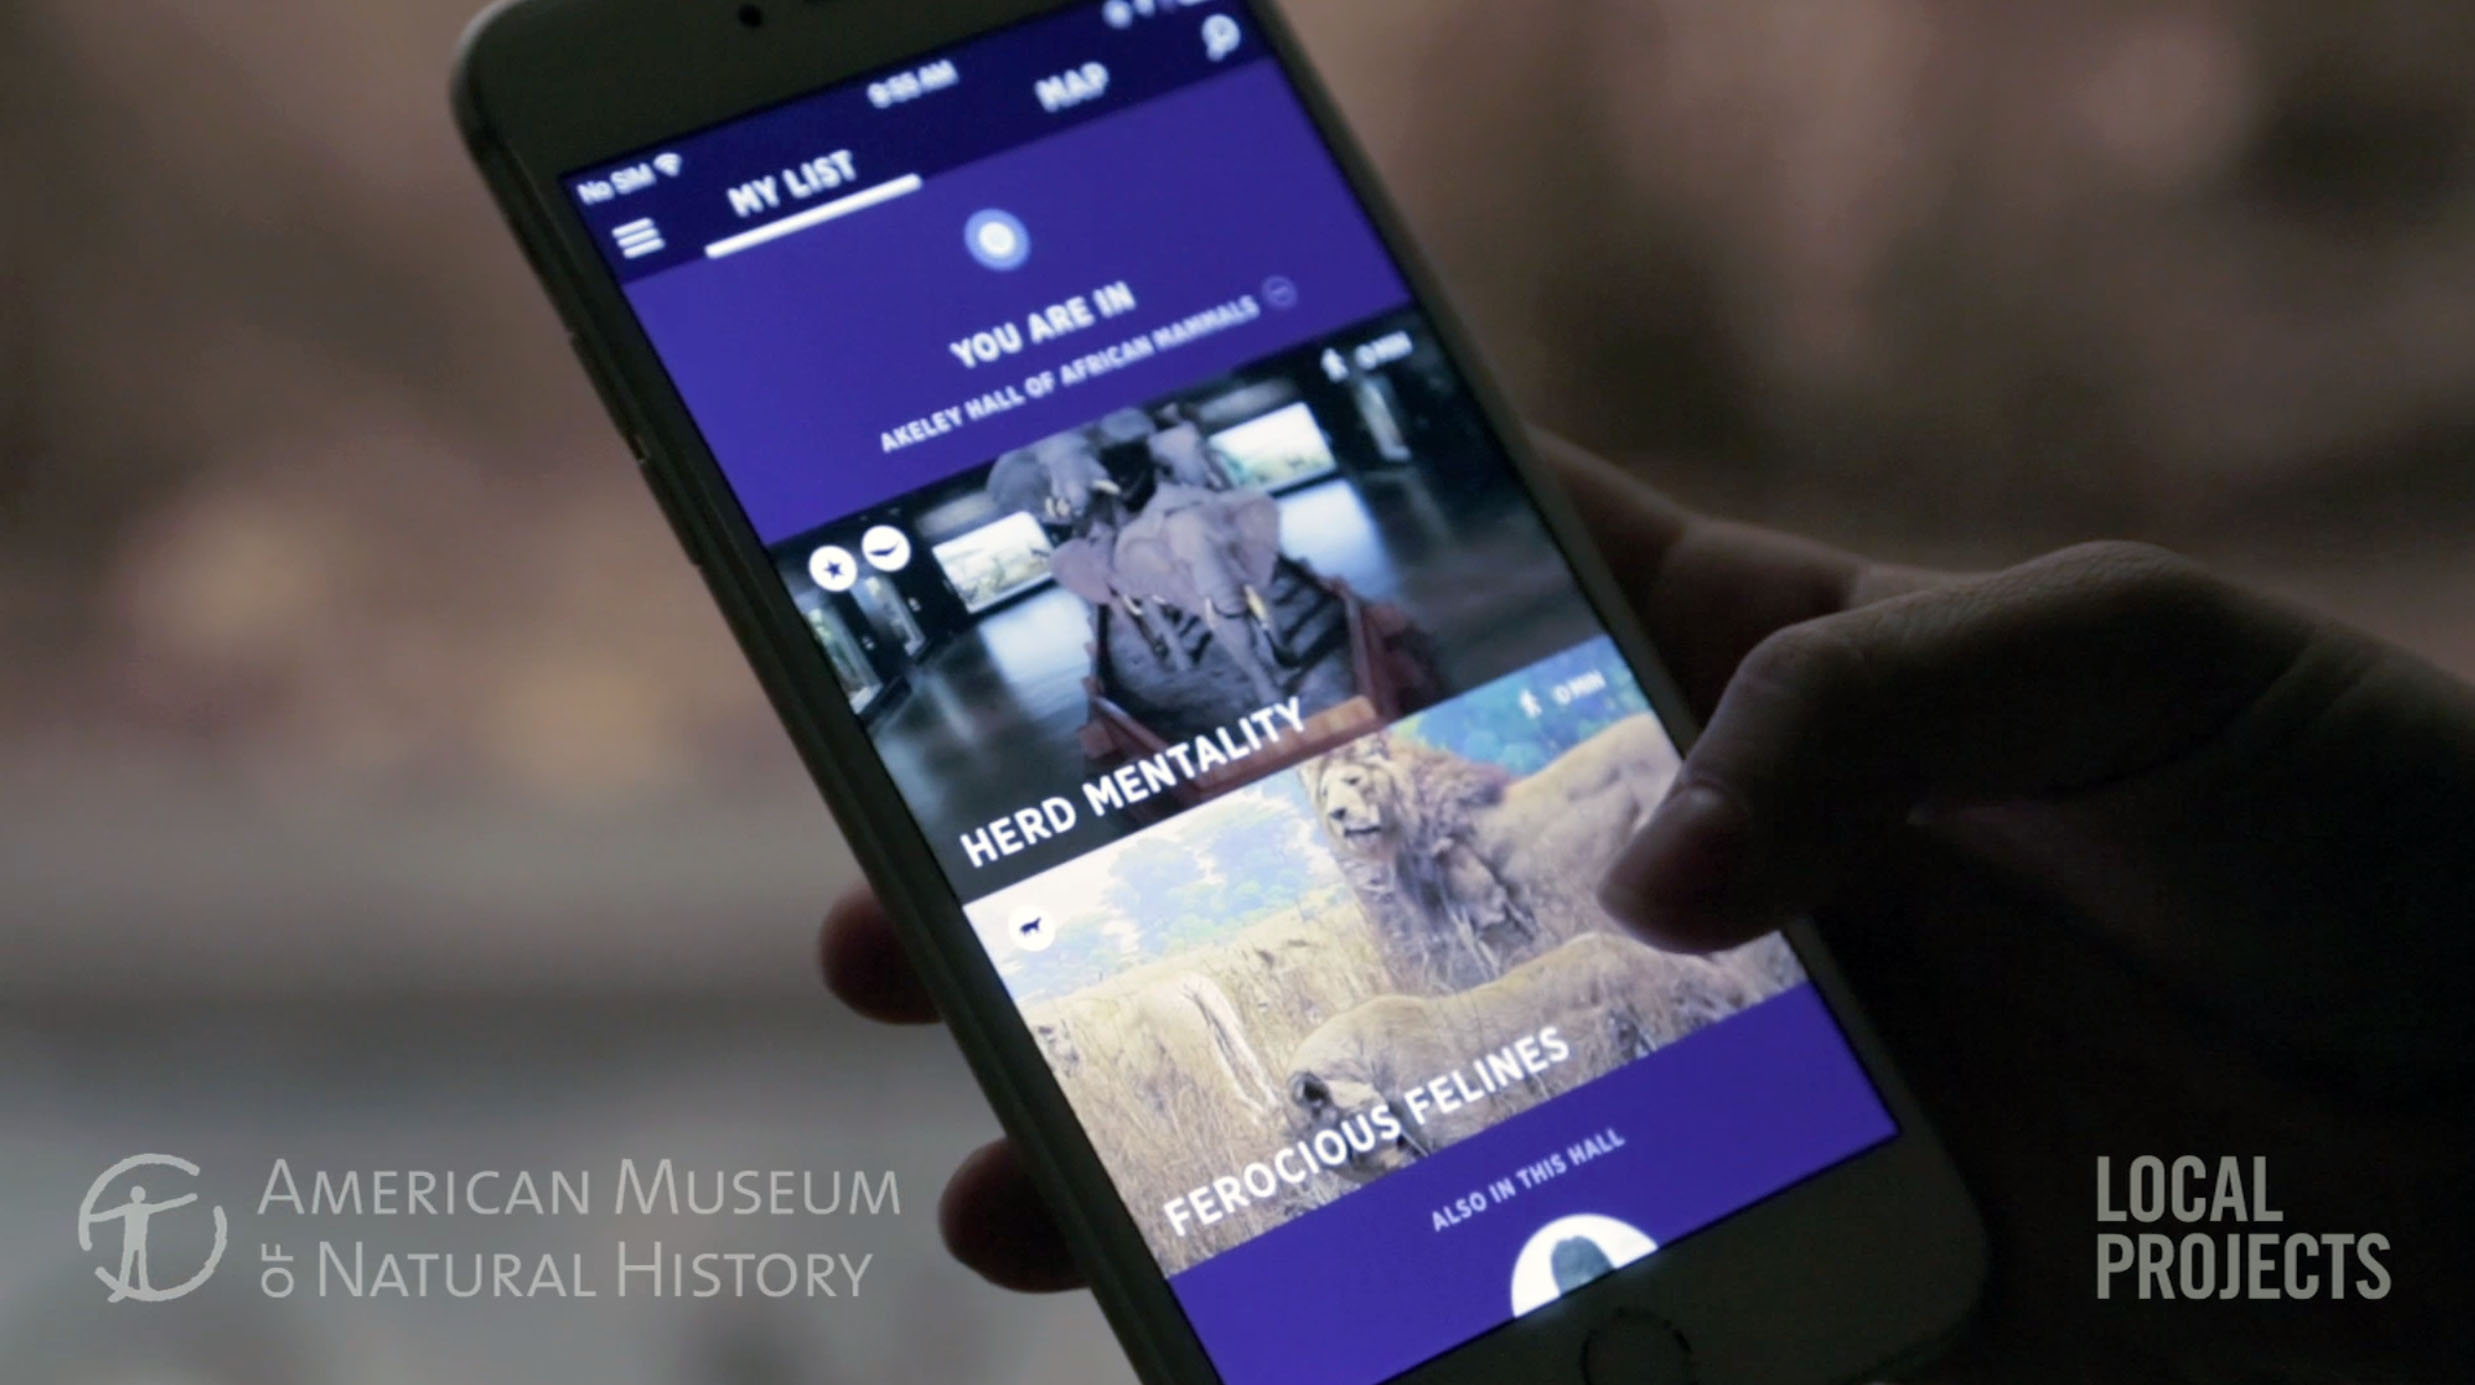 Location awareness serves up content based on where you are in the museum